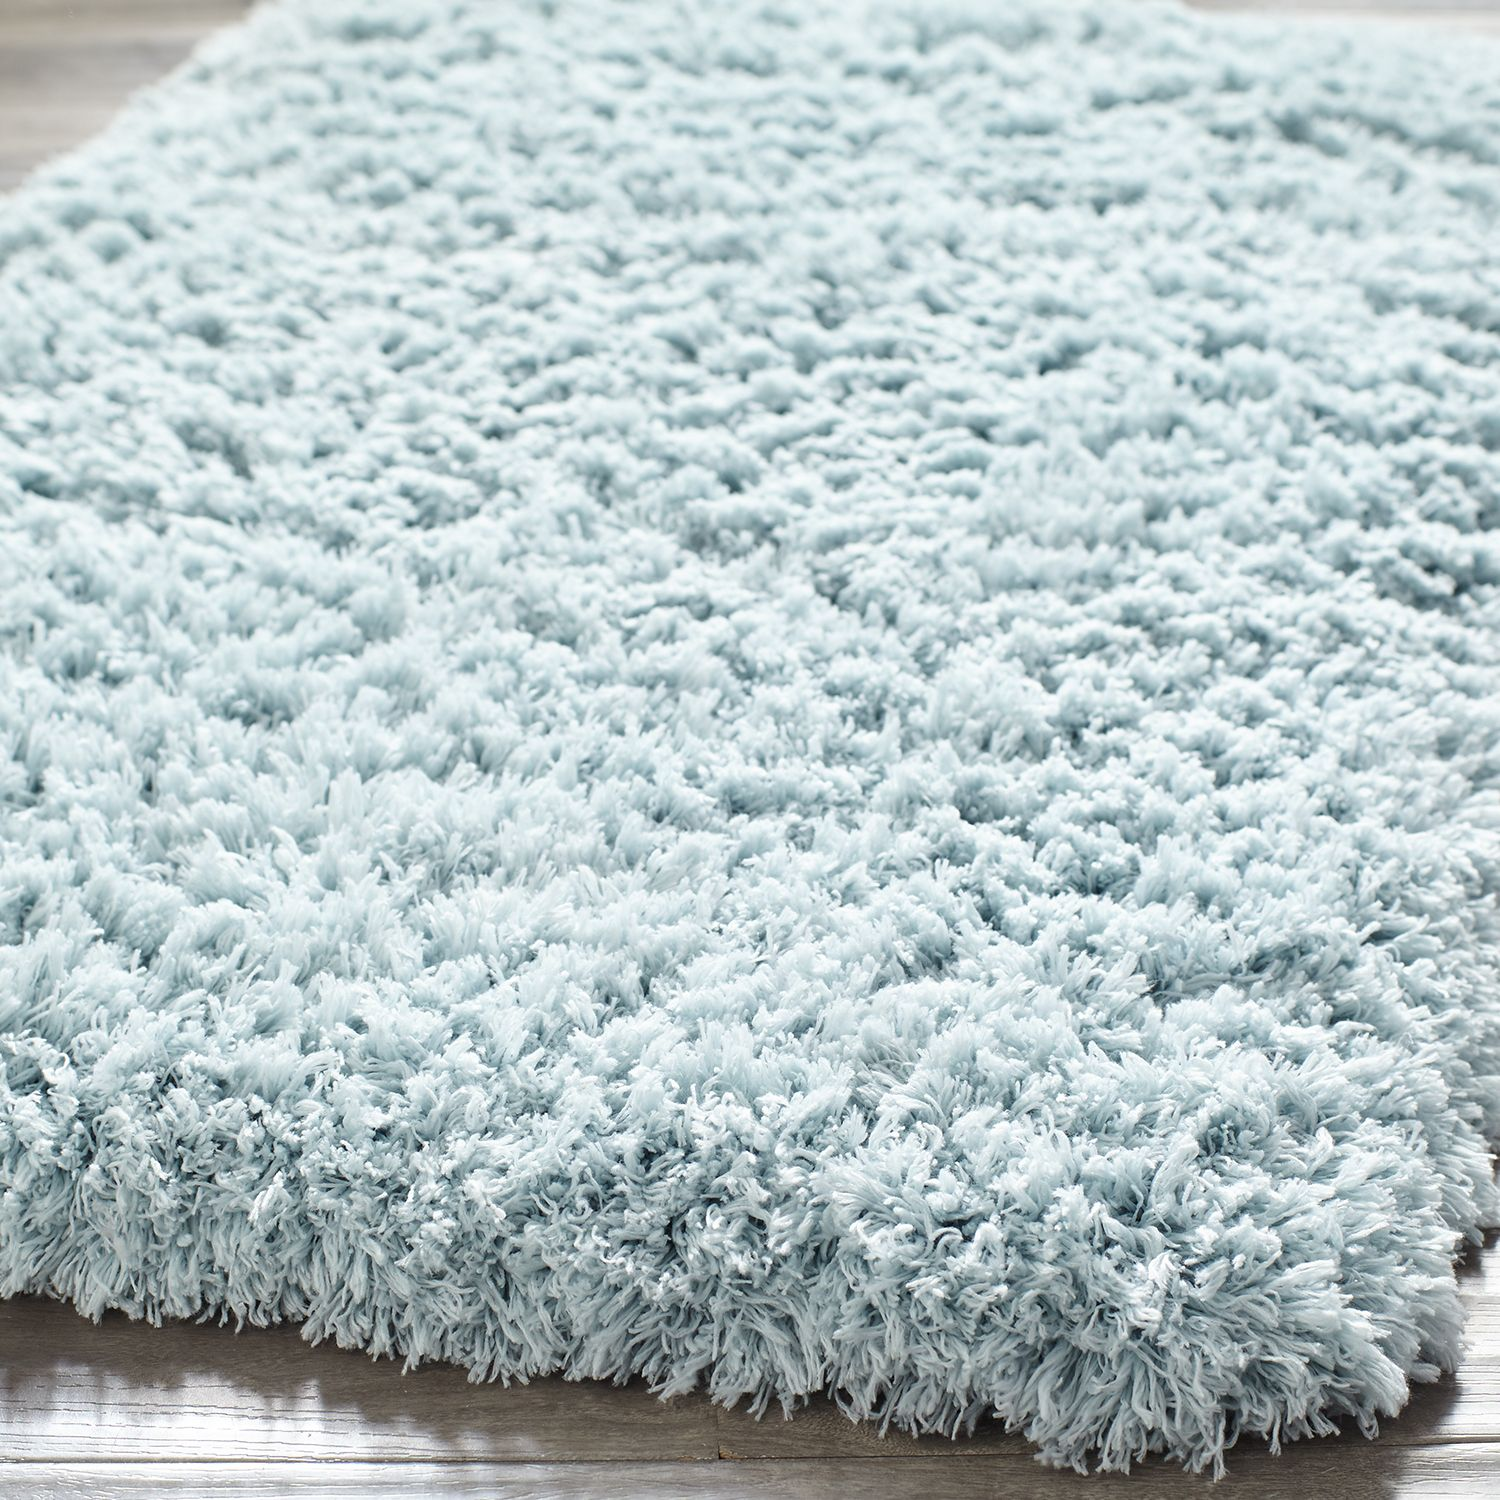 rc memory mats size foam innovative home my rug mat extraordinary extra with slip blue depot along in rugs bathroom no round also lavish locker small colorful house pcs bath rectangular calm room shower decors large non accessories